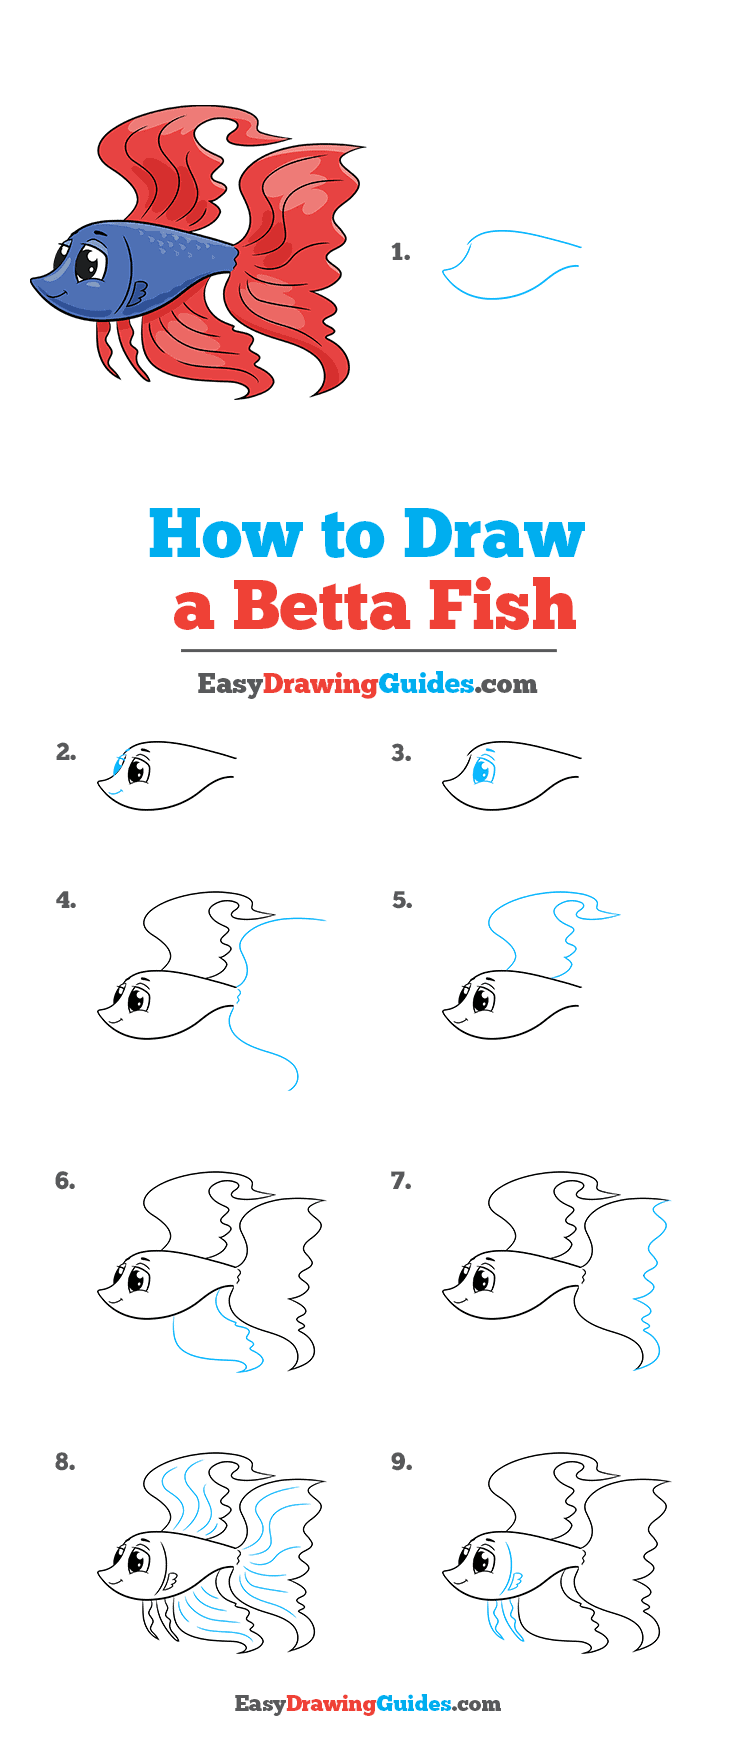 How to Draw a Betta Fish Step by Step Tutorial Image